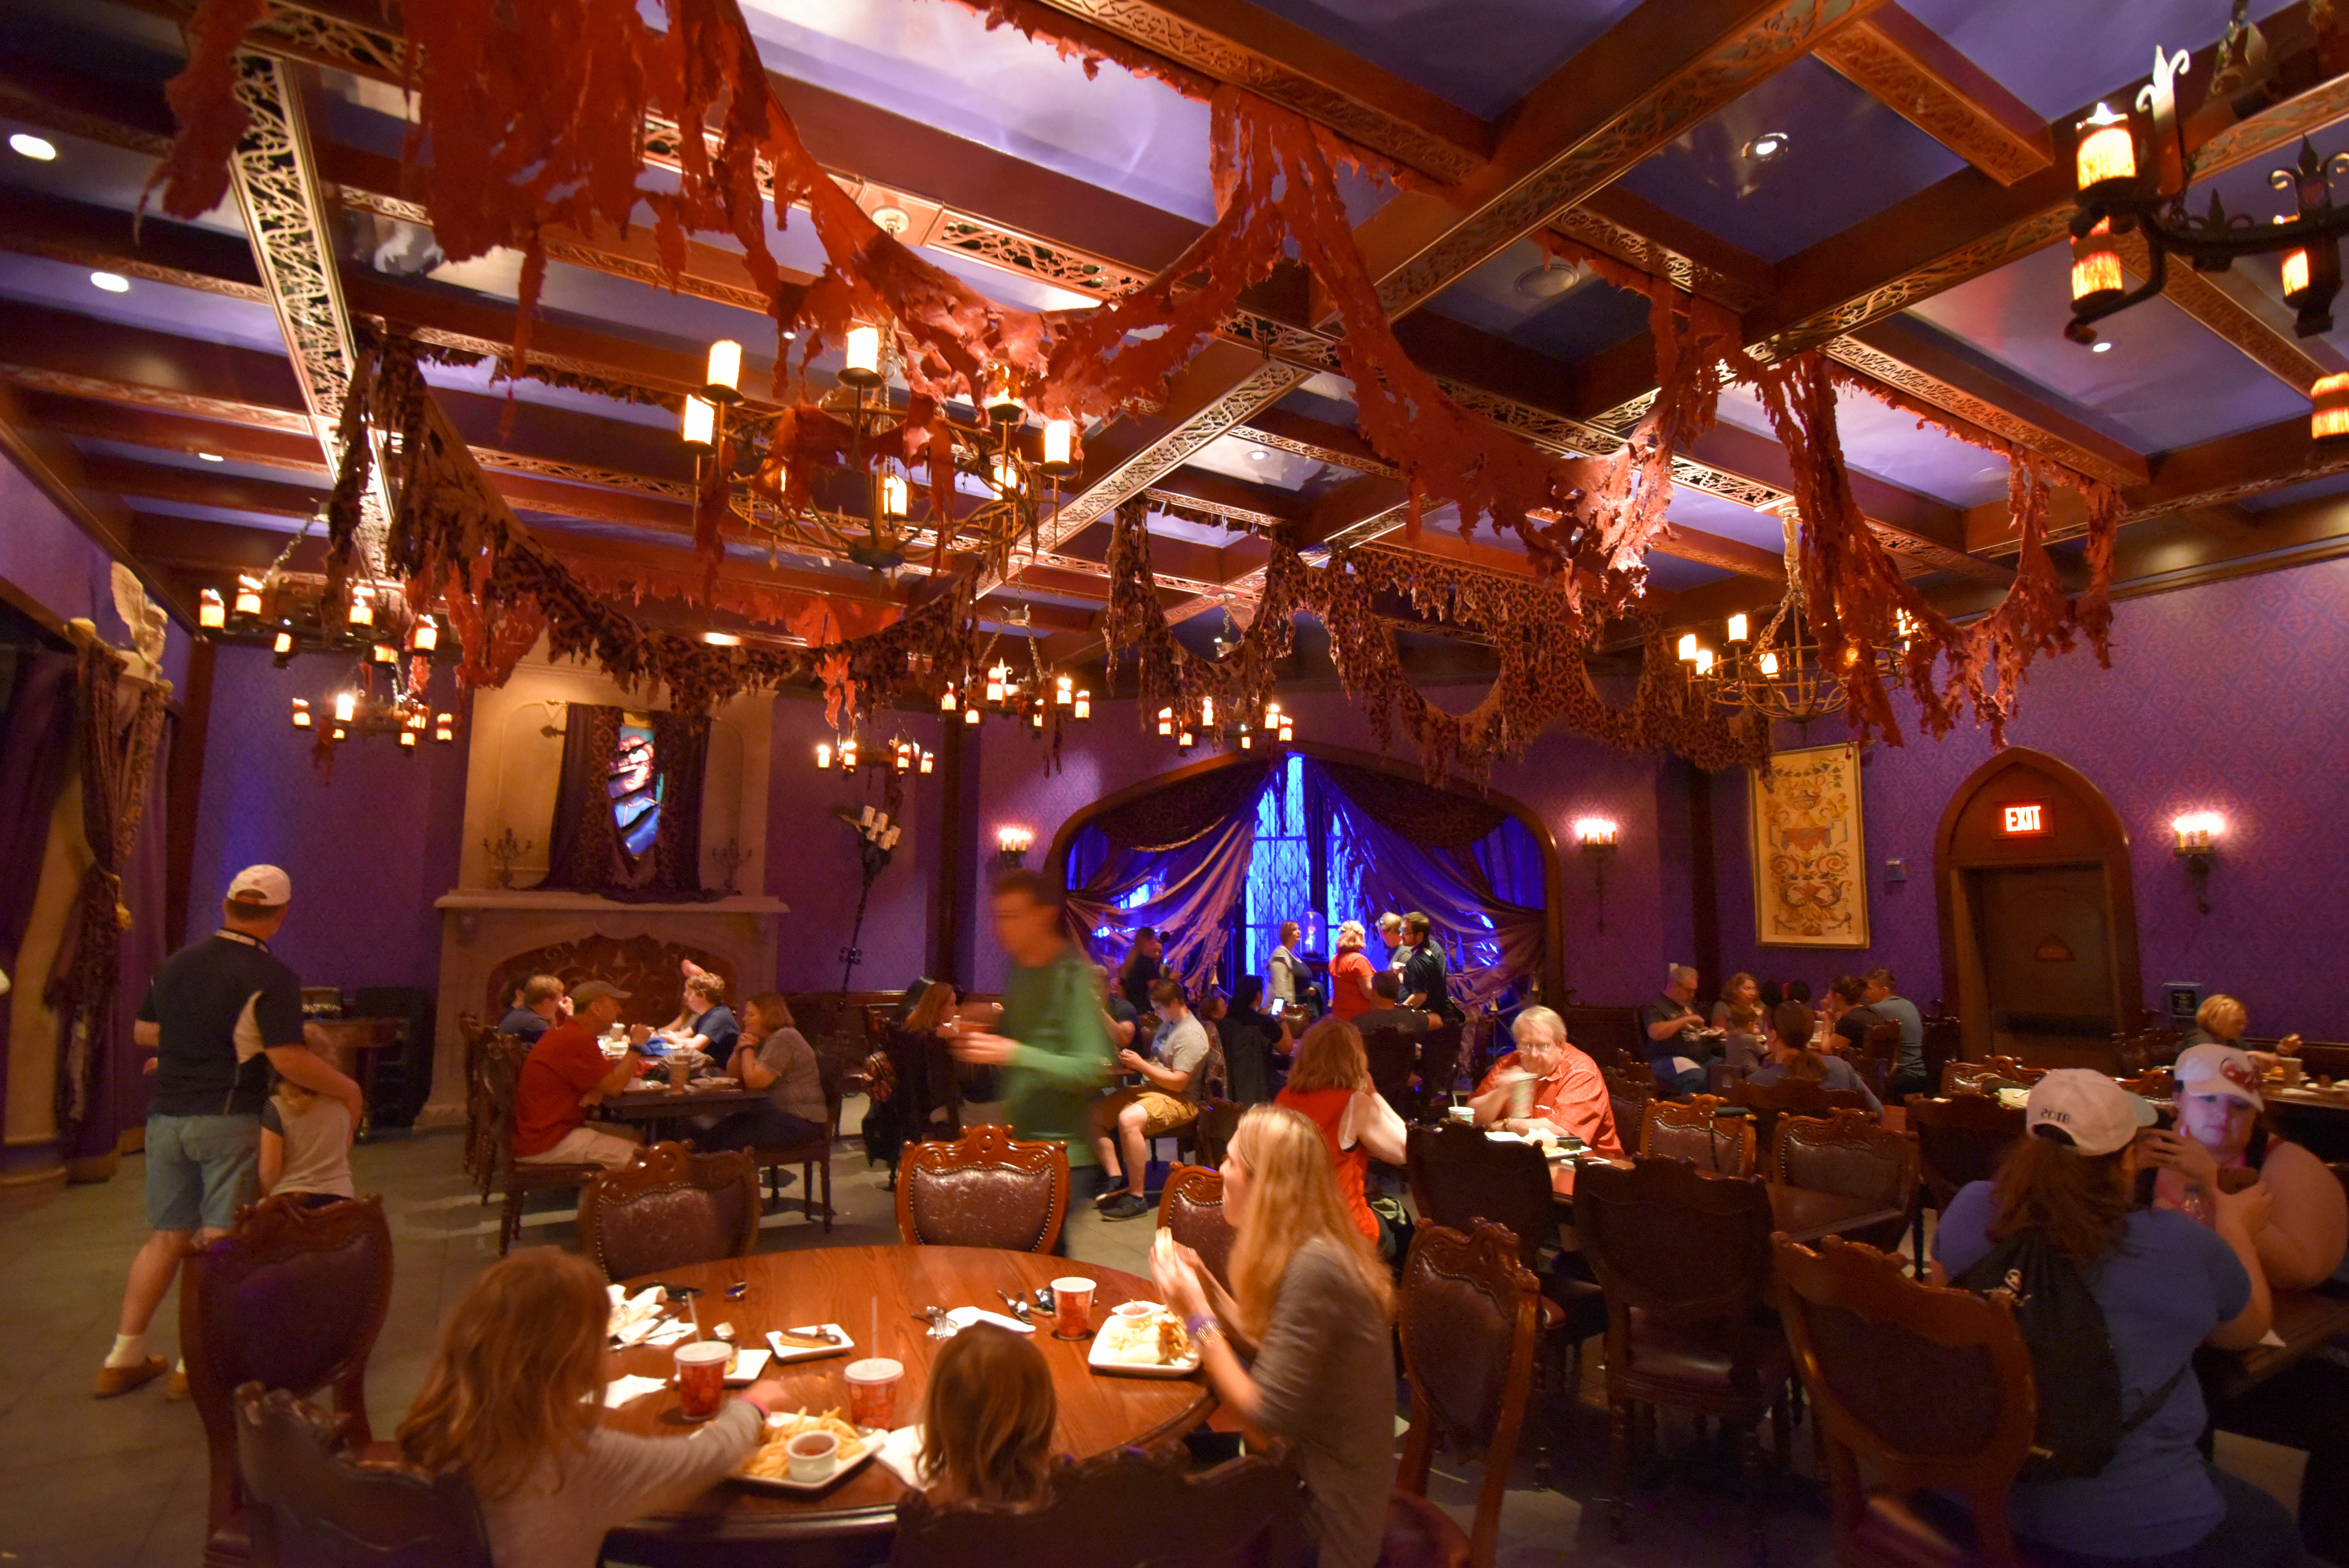 The Best Quick Service Restaurants At Disney World Dream Plan Fly - Magic kingdom table service restaurants